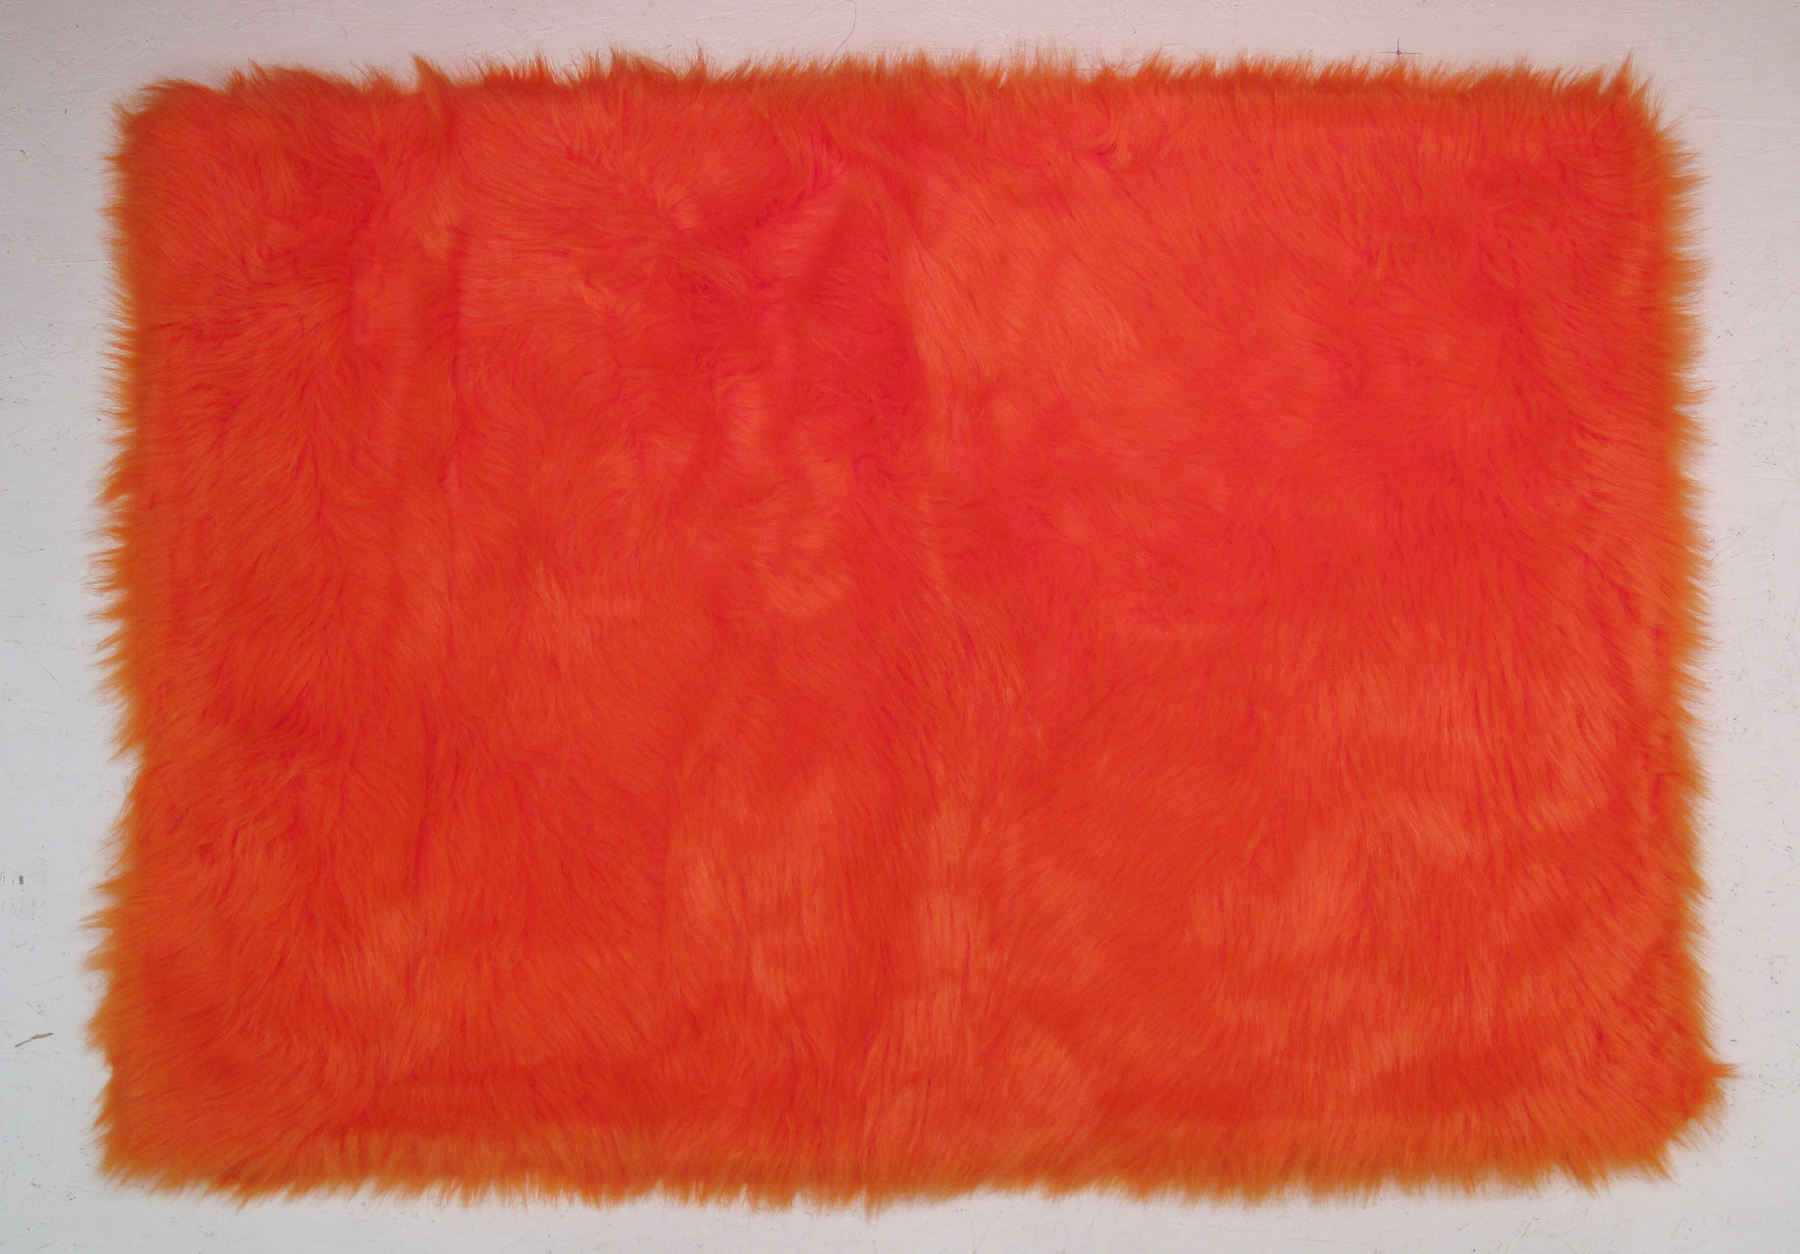 Fun Rug Flokati Orange Area Rug